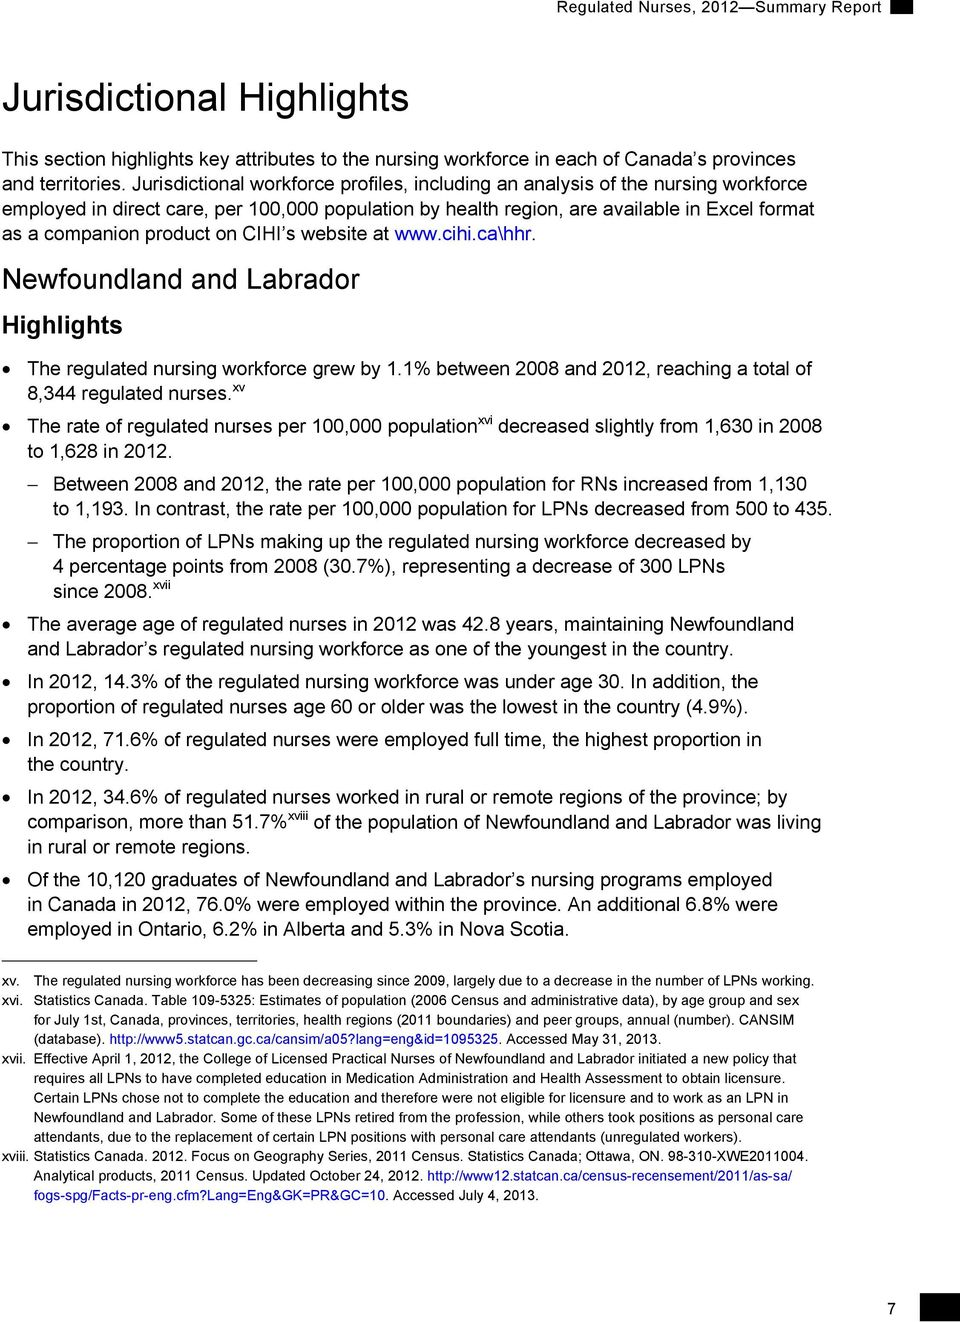 product on CIHI s website at www.cihi.ca\hhr. Newfoundland and Labrador Highlights The regulated nursing workforce grew by 1.1% between 2008 and 2012, reaching a total of 8,344 regulated nurses.